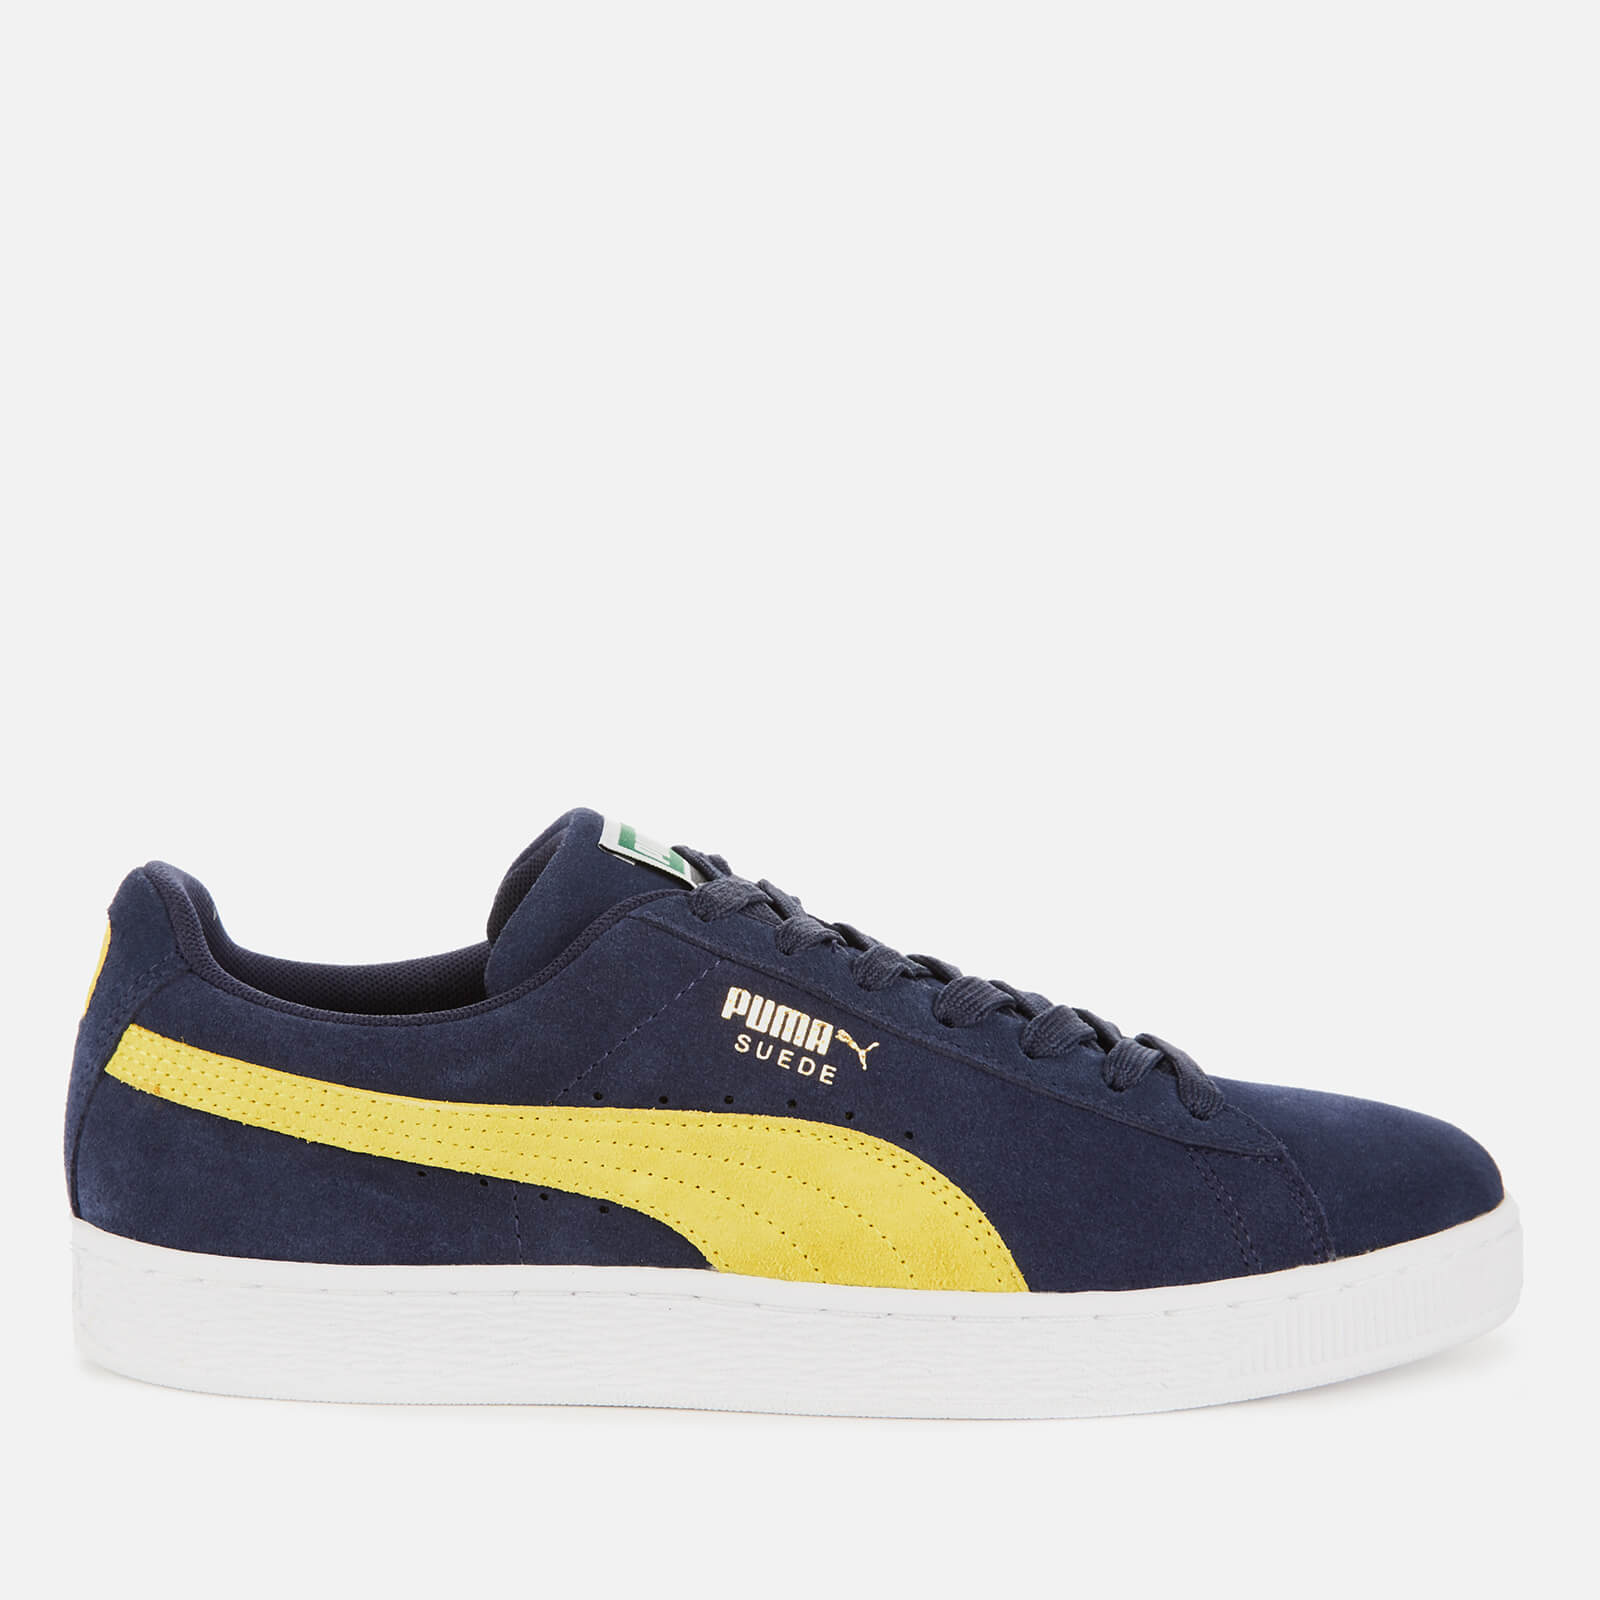 best authentic 1db1f 9a1bb Puma Men's Suede Classic Trainers - Peacoat/Blazing Yellow